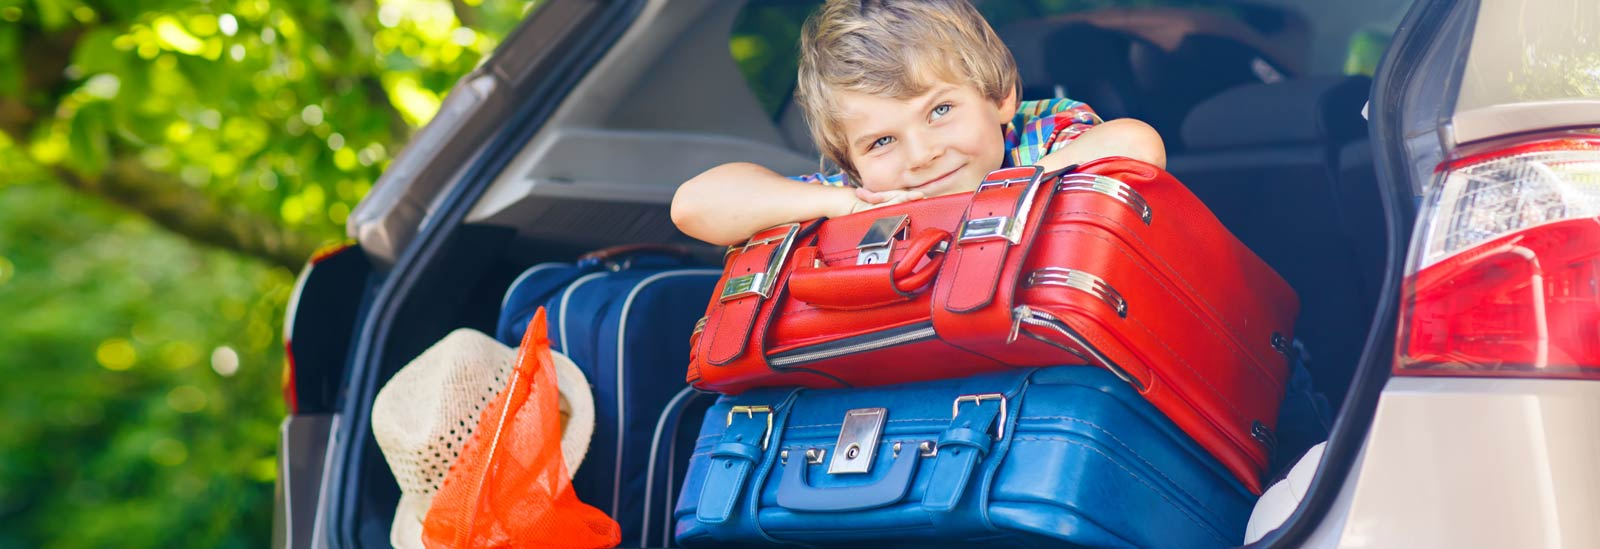 Boy in car with suitcases